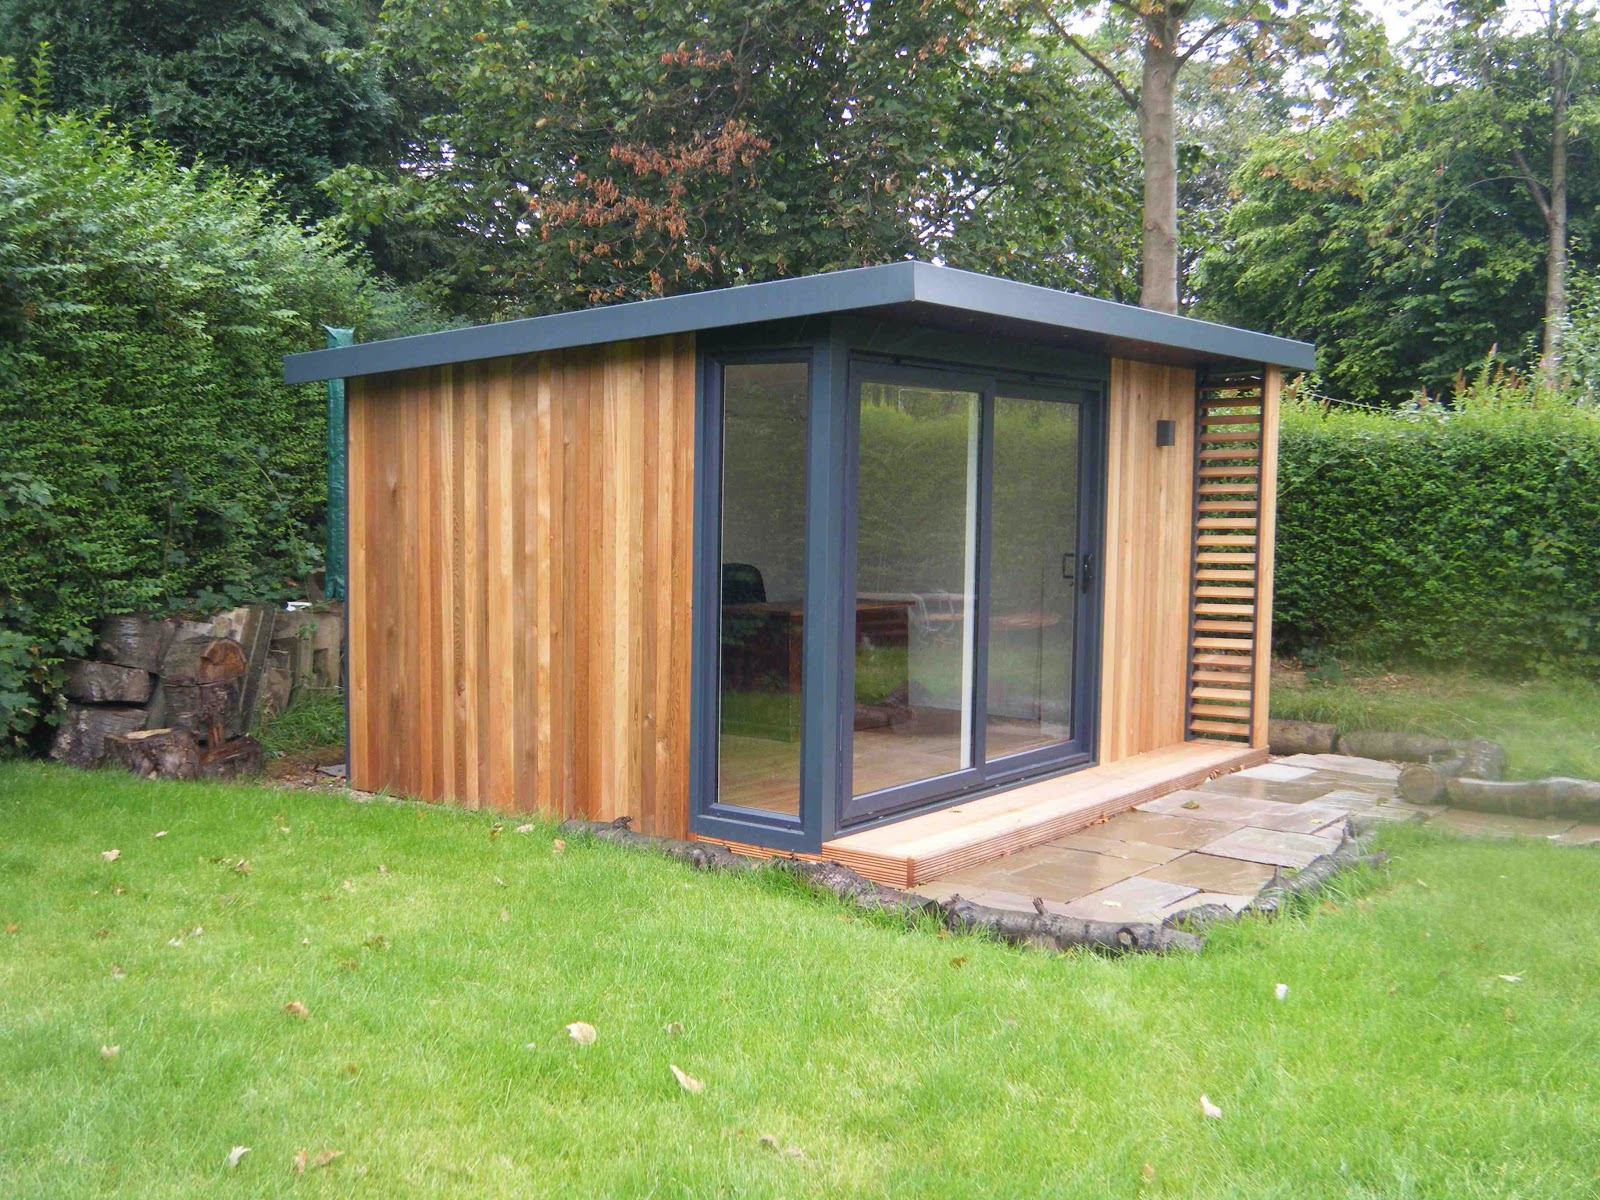 Shedworking the garden office on channel 4 for Cheap garden office buildings